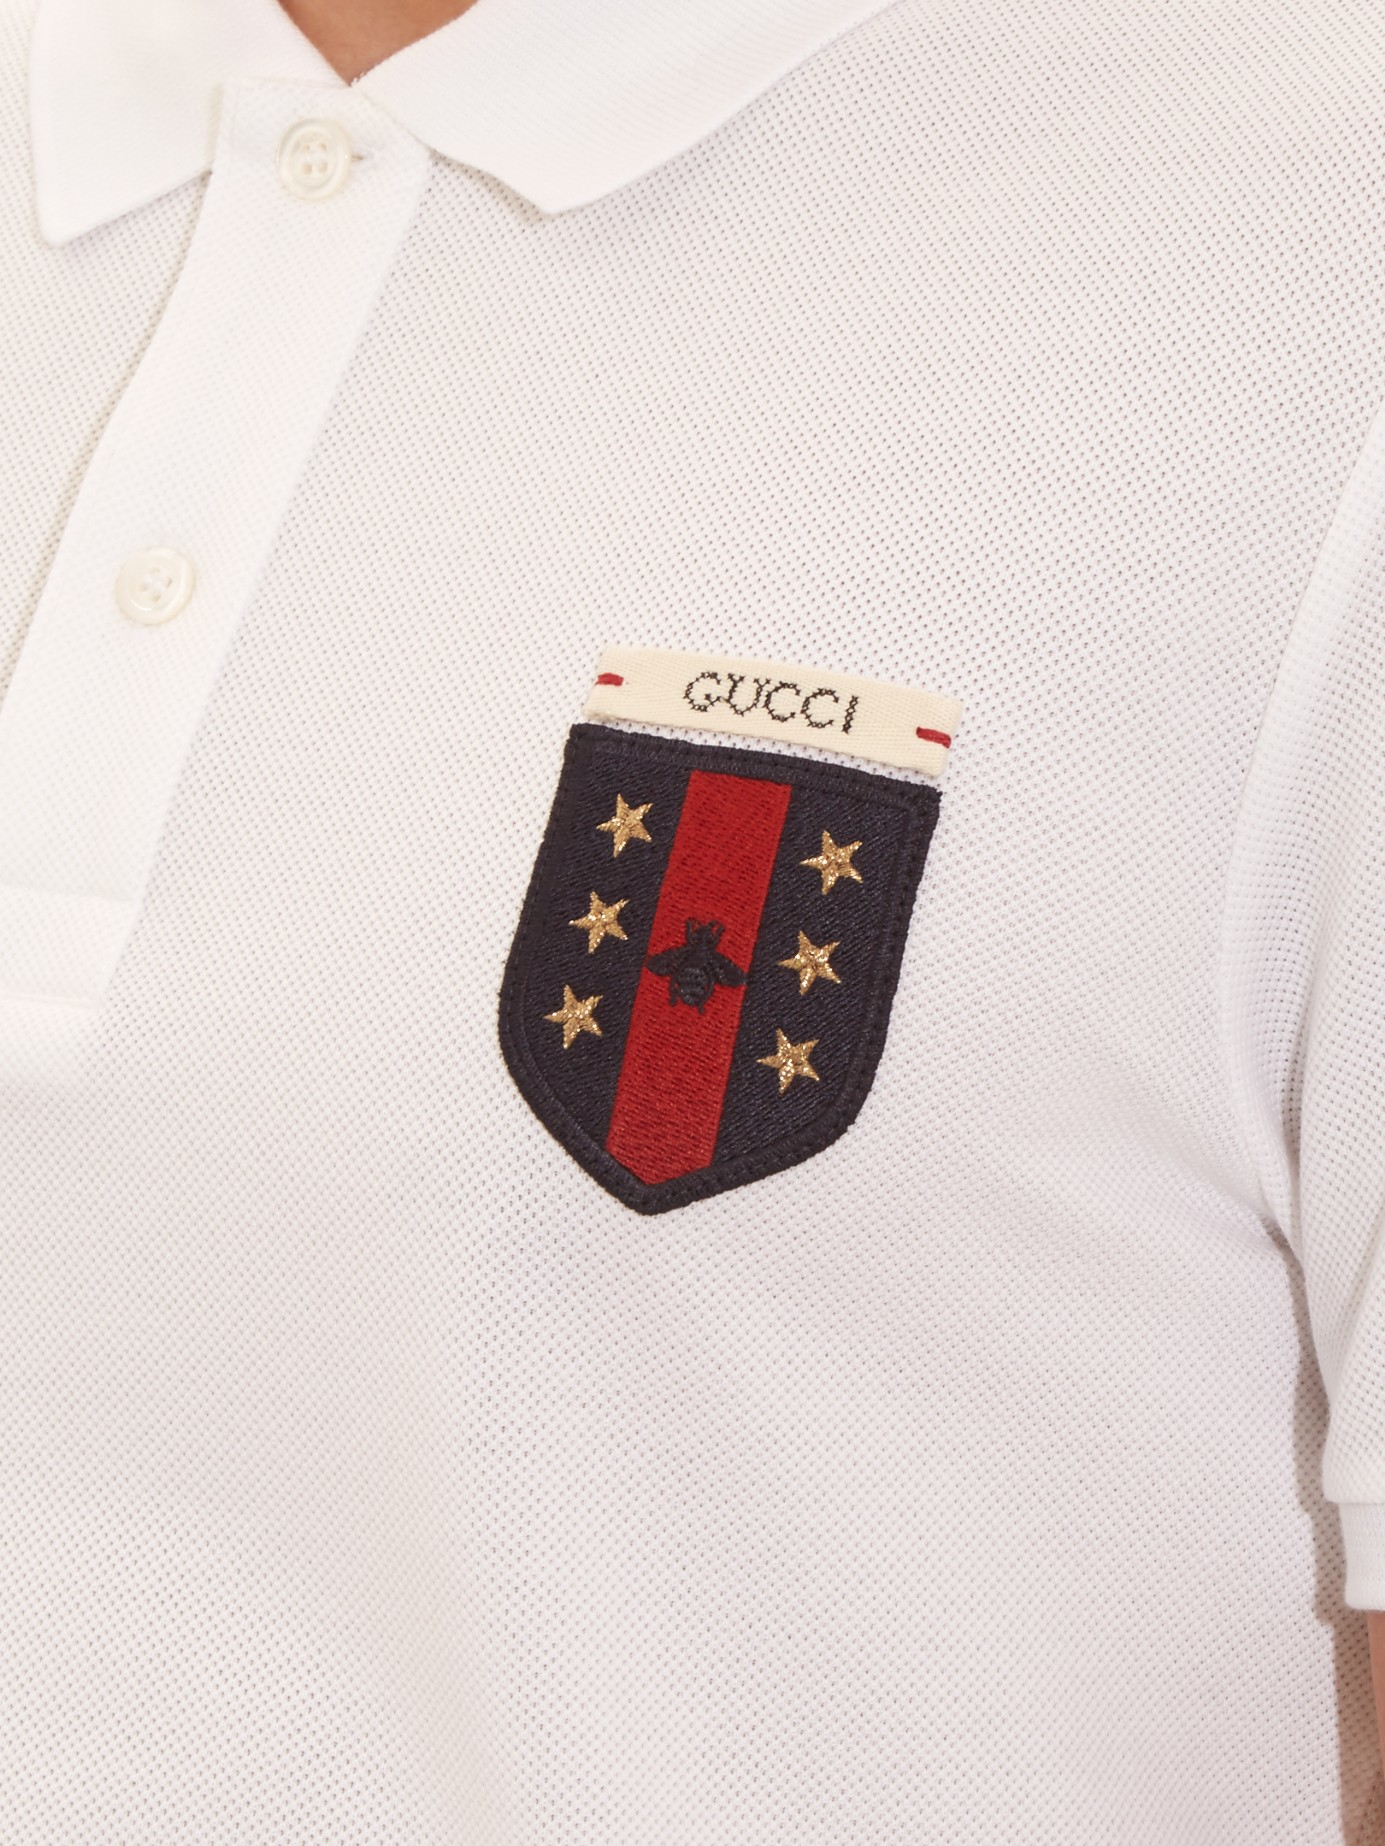 Lyst - Gucci Logo-embroidered Polo Shirt In White For Men